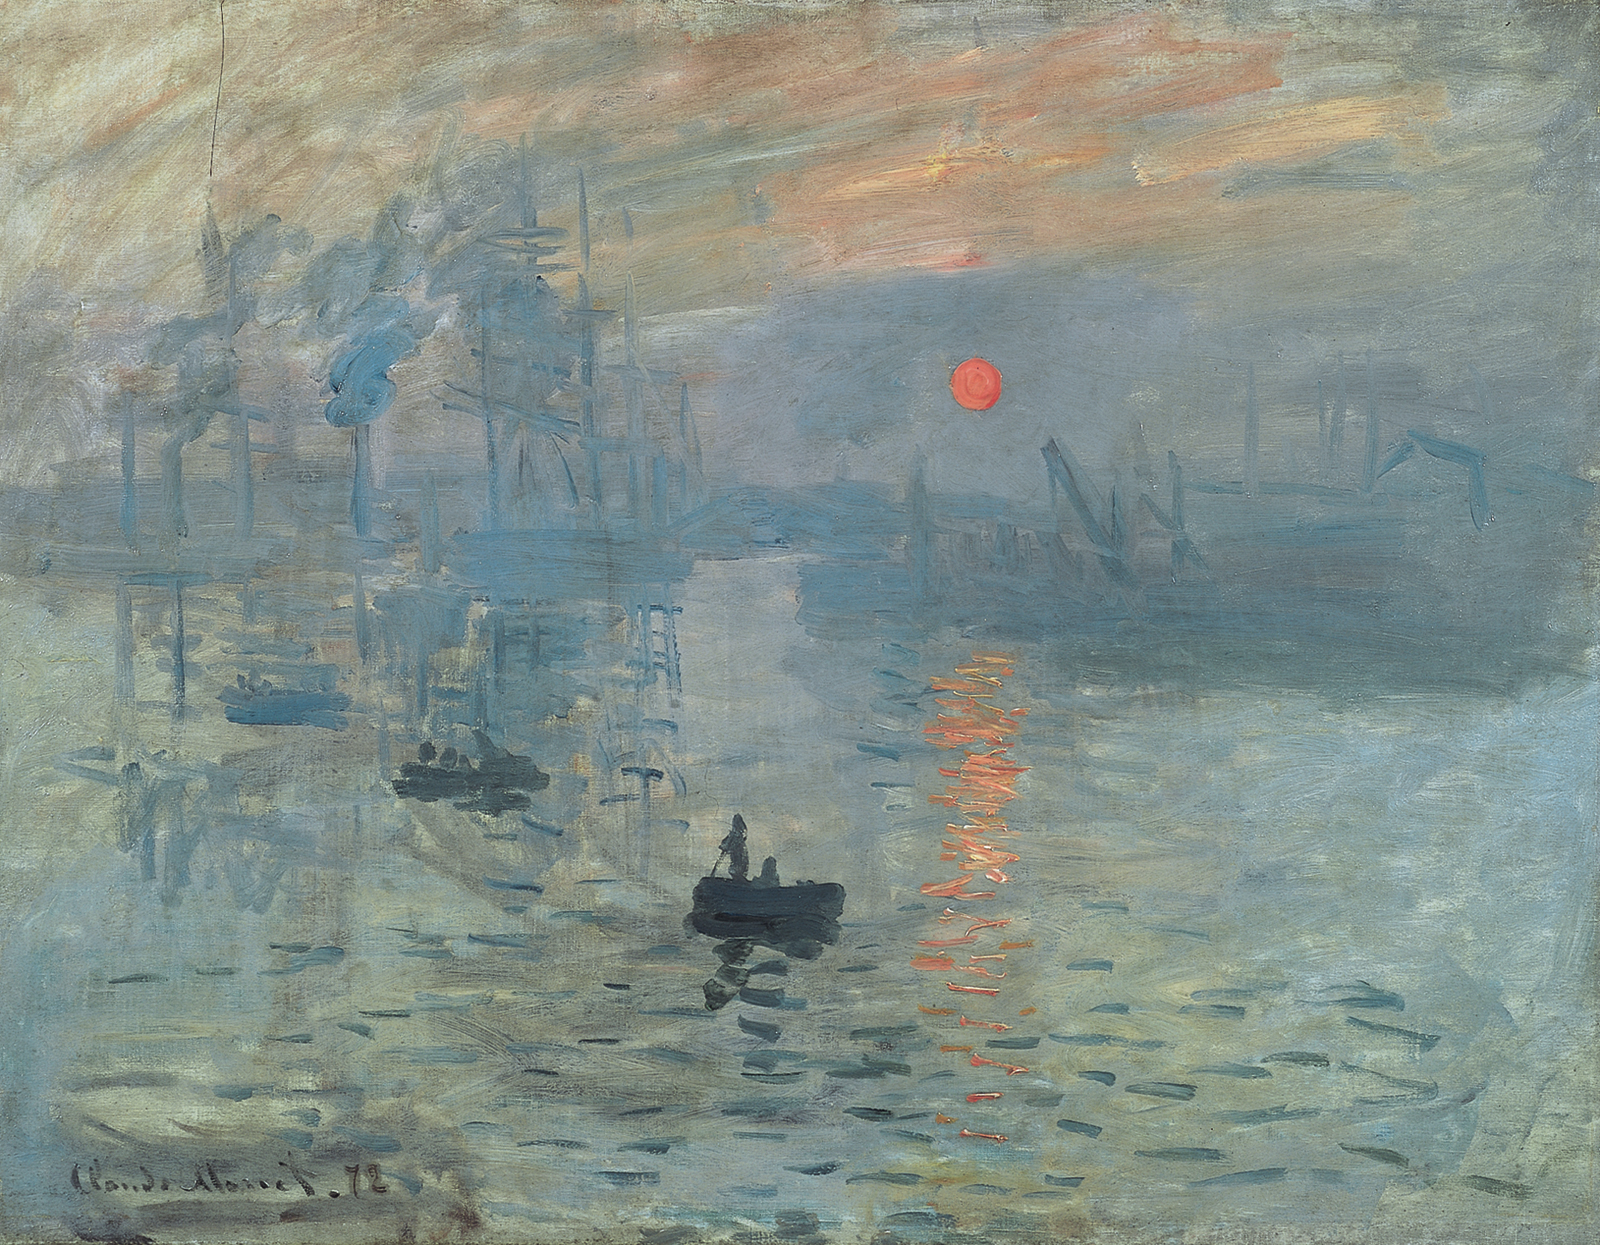 Claude Monet: Impression, Sunrise